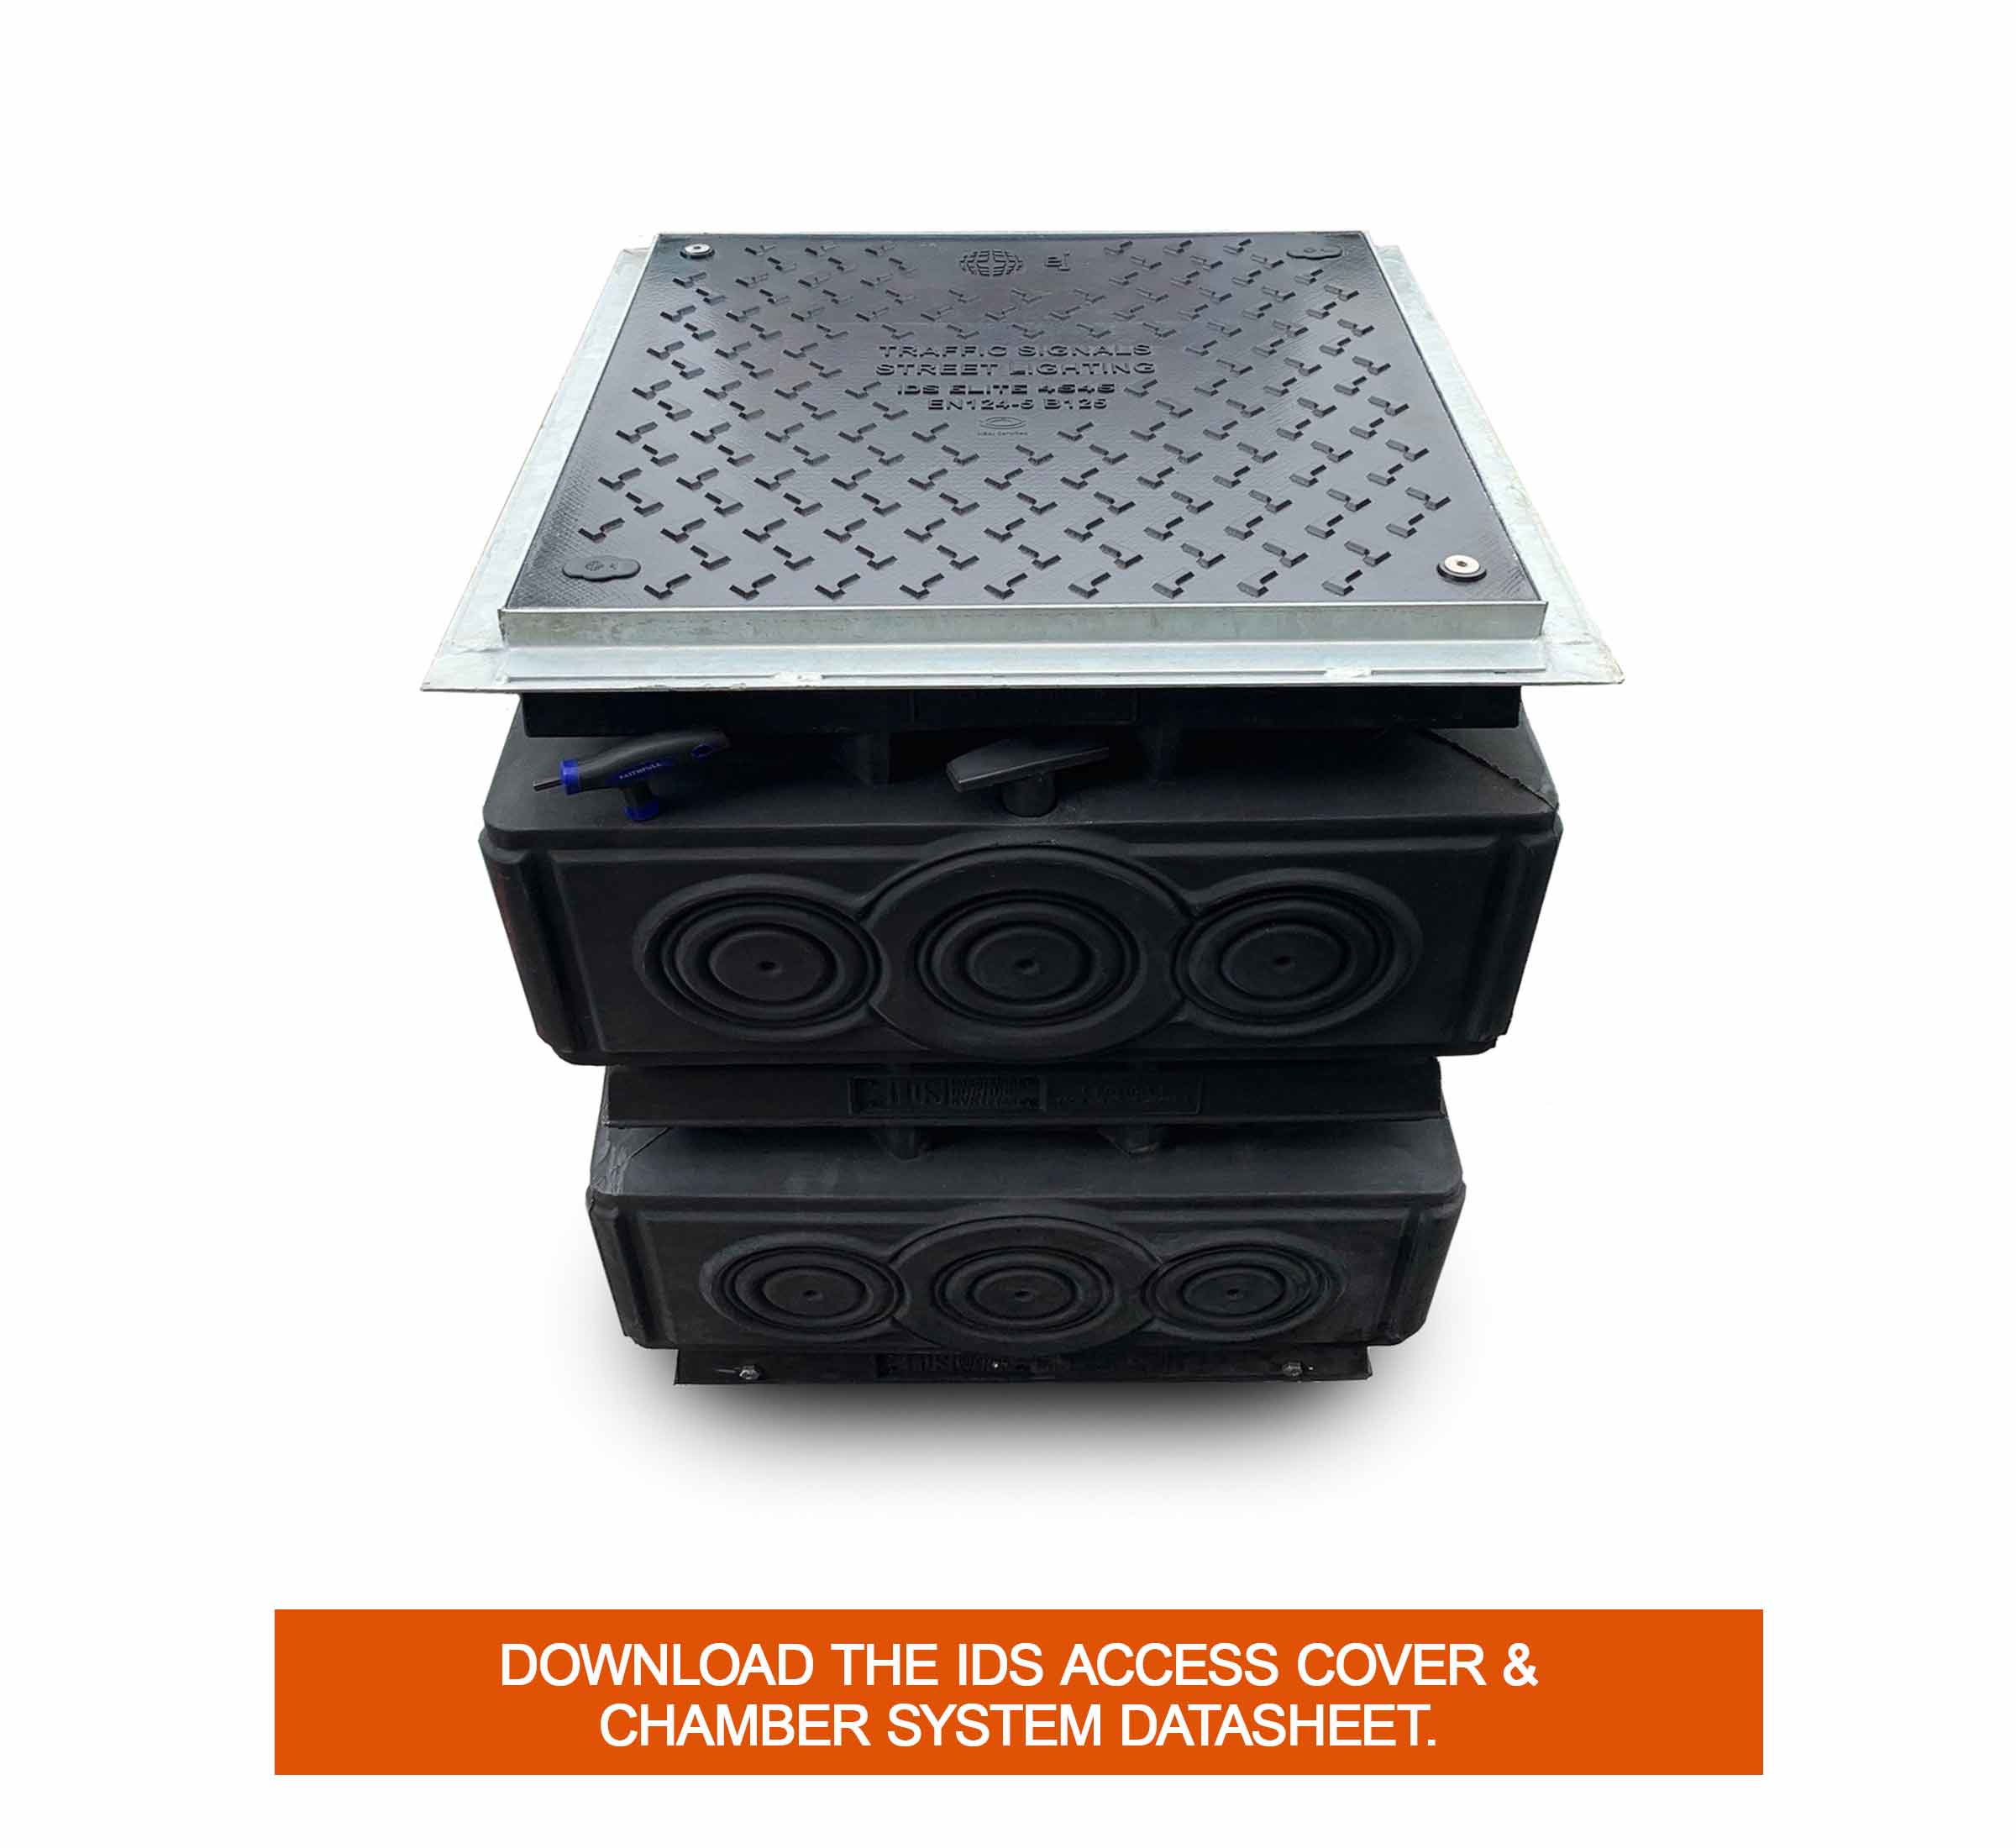 DOWNLOAD-THE-IDS-ACCESS-COVER-&-CHAMBER-SYSTEM-DATASHEET